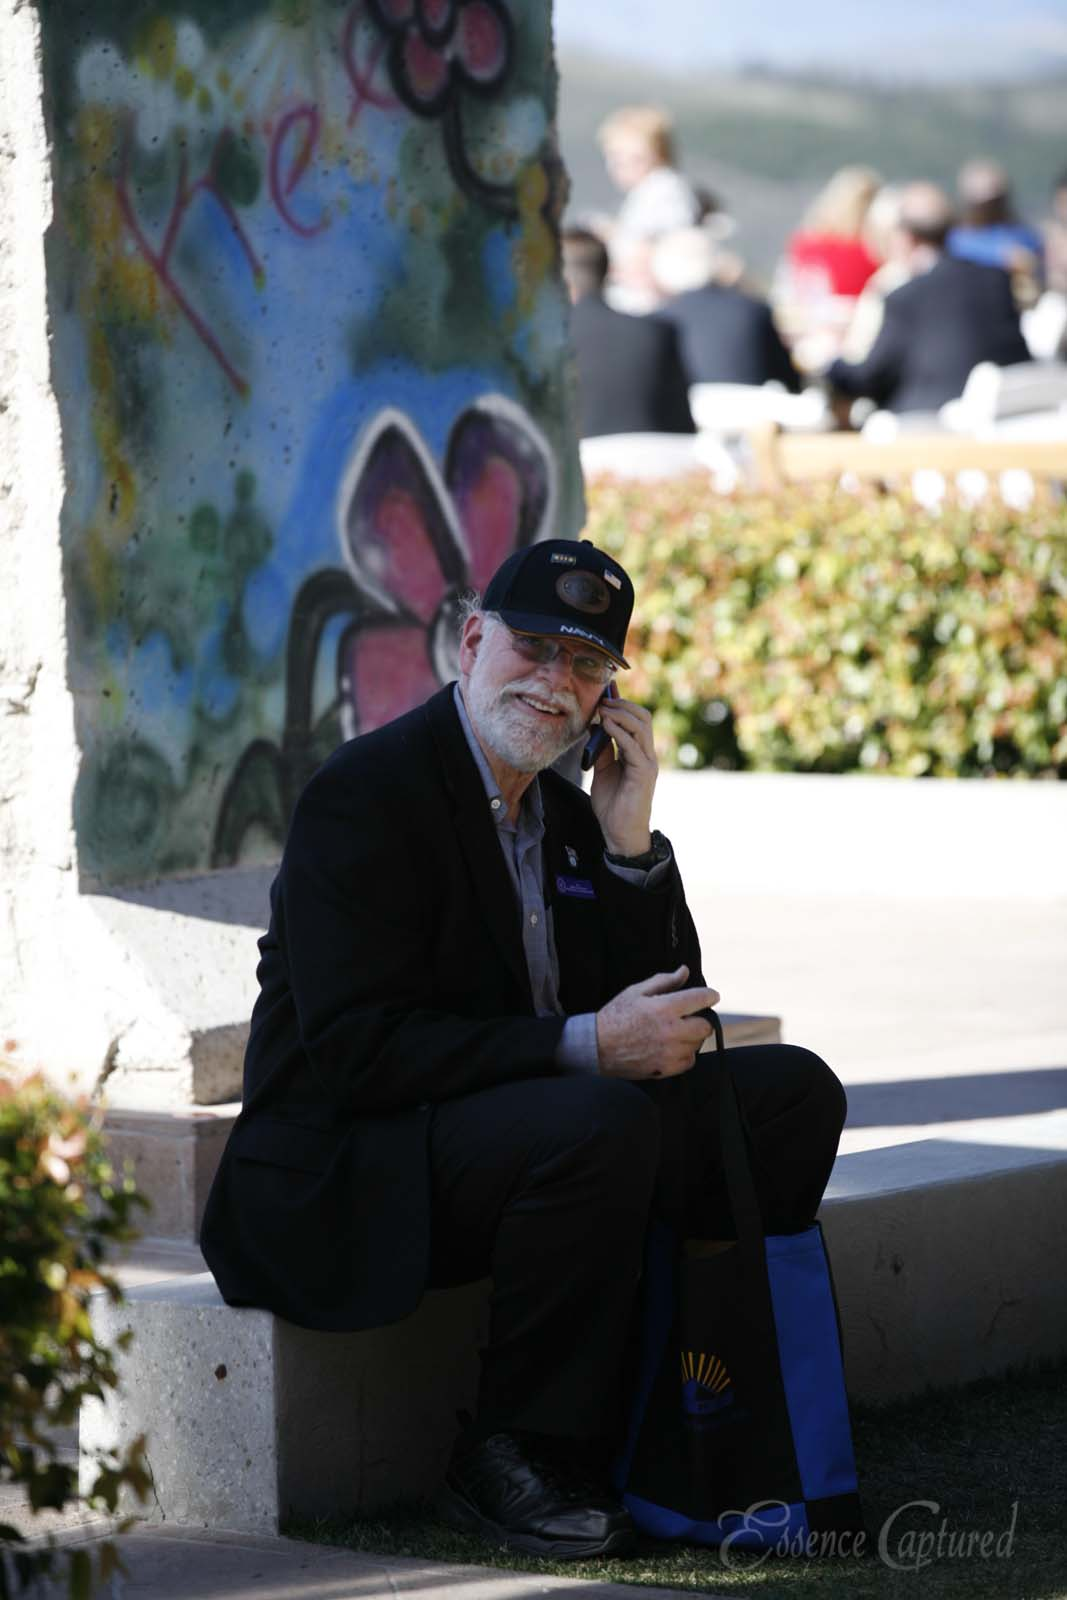 man on cell phone at event